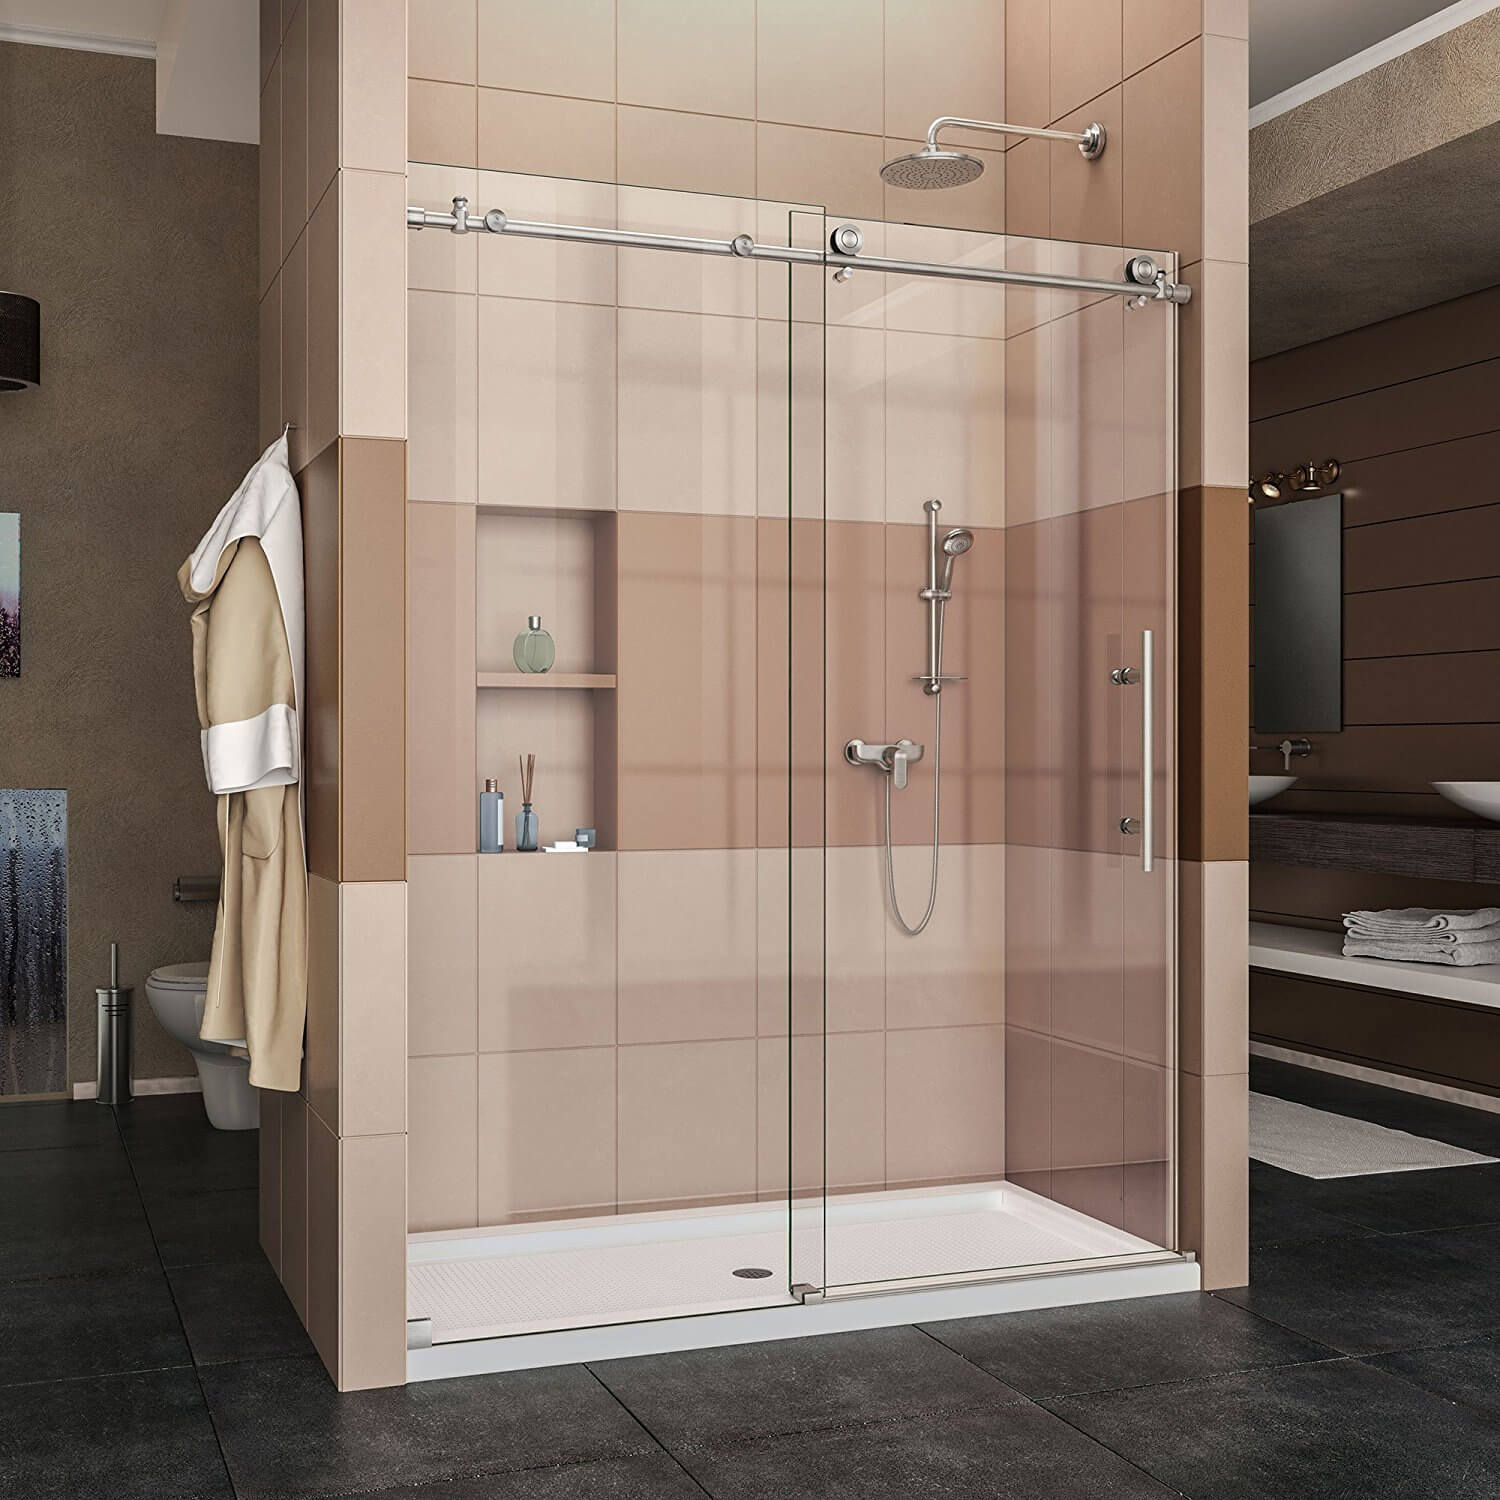 Best Sliding Shower Doors 2019 Simple Toilet